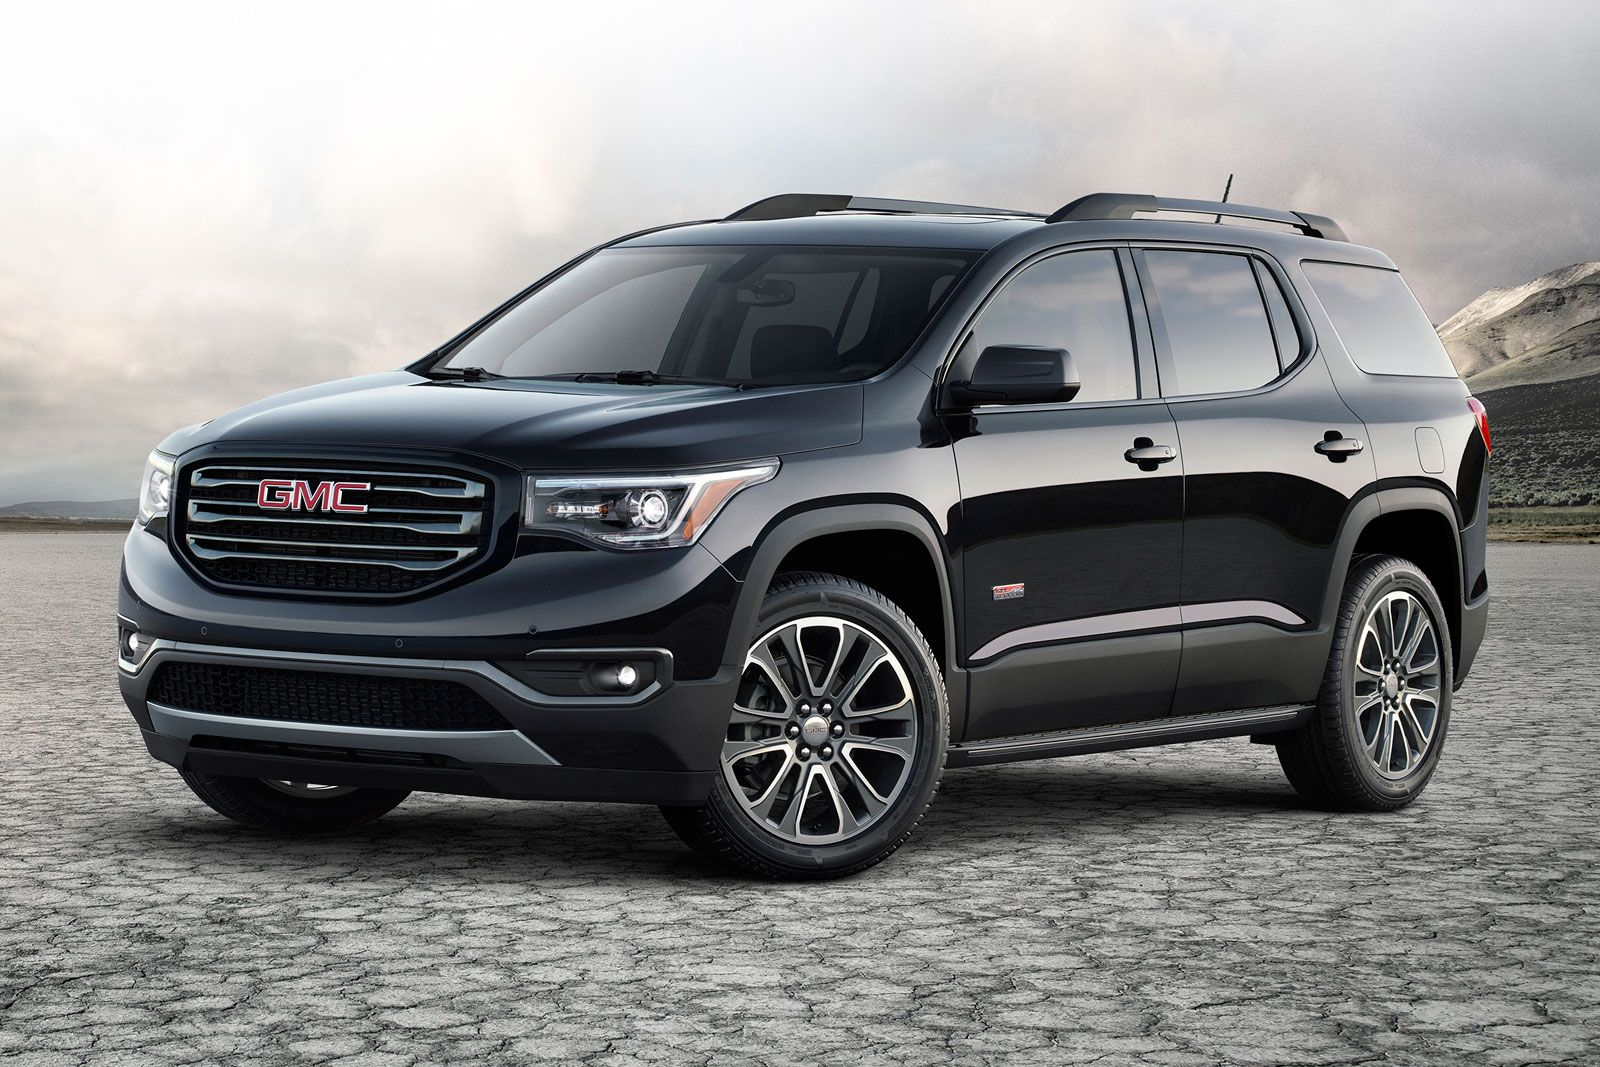 Gmc S Latest Suv Travels Farther Thanks To Glue Gmc Suv Gmc Acadia 2017 Gmc Trucks